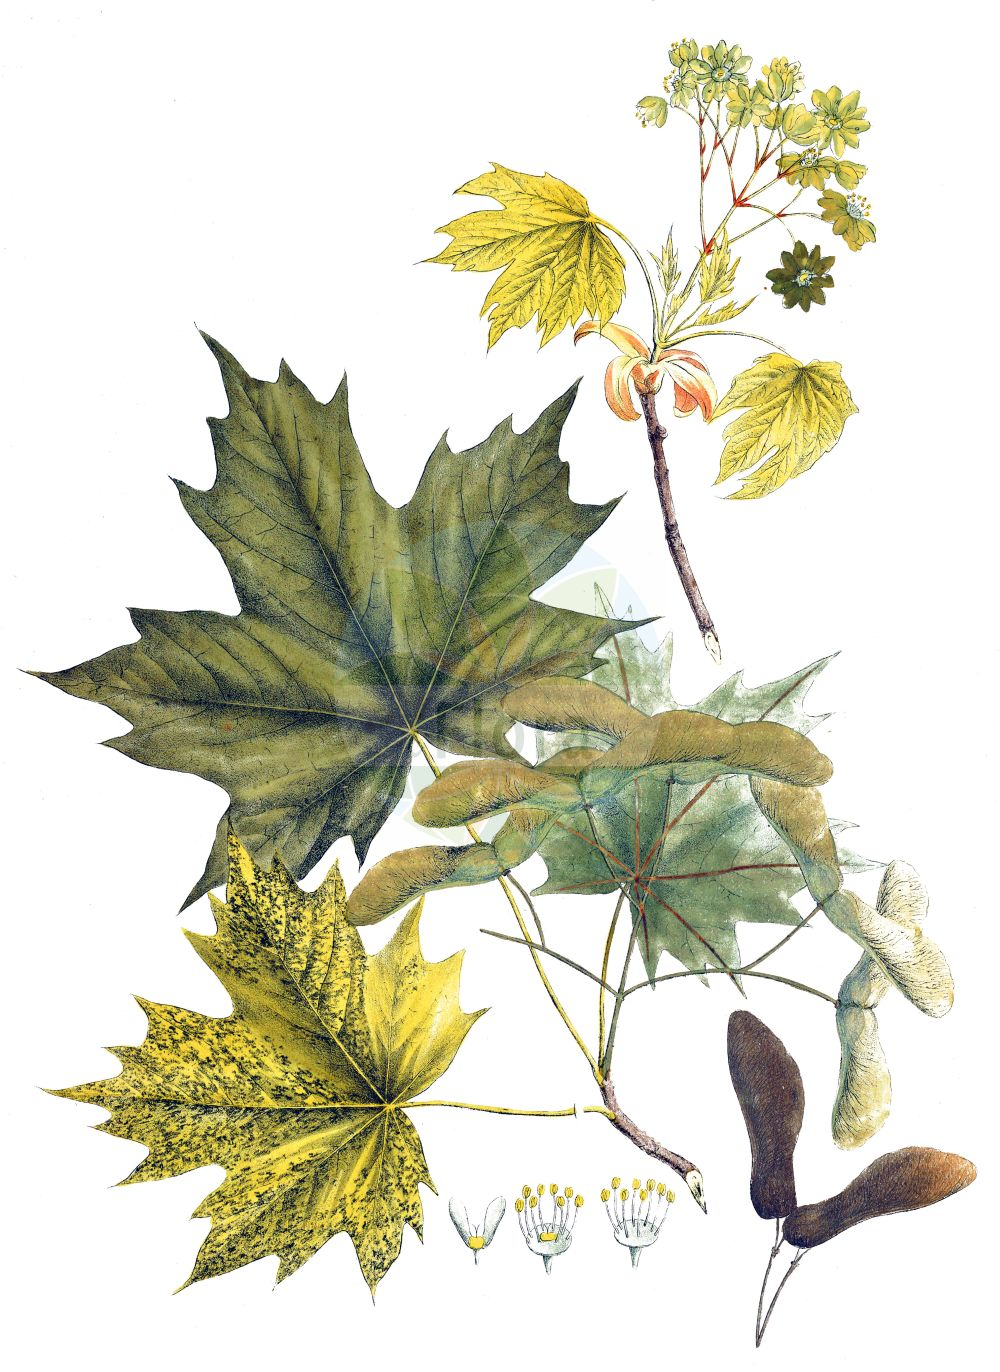 Historische Abbildung von Acer platanoides (Spitz-Ahorn - Norway Maple). Das Bild zeigt Blatt, Bluete, Frucht und Same. ---- Historical Drawing of Acer platanoides (Spitz-Ahorn - Norway Maple).The image is showing leaf, flower, fruit and seed.(Acer platanoides,Spitz-Ahorn,Norway Maple,Acer platanoides,Spitz-Ahorn,Europaeischer Spitz-Ahorn,Norway Maple,Plane Maple,Acer,Ahorn,Maple,Sapindaceae,Seifenbaumgewaechse,Soapberry family,Blatt,Bluete,Frucht,Same,leaf,flower,fruit,seed,Krebs (1826))